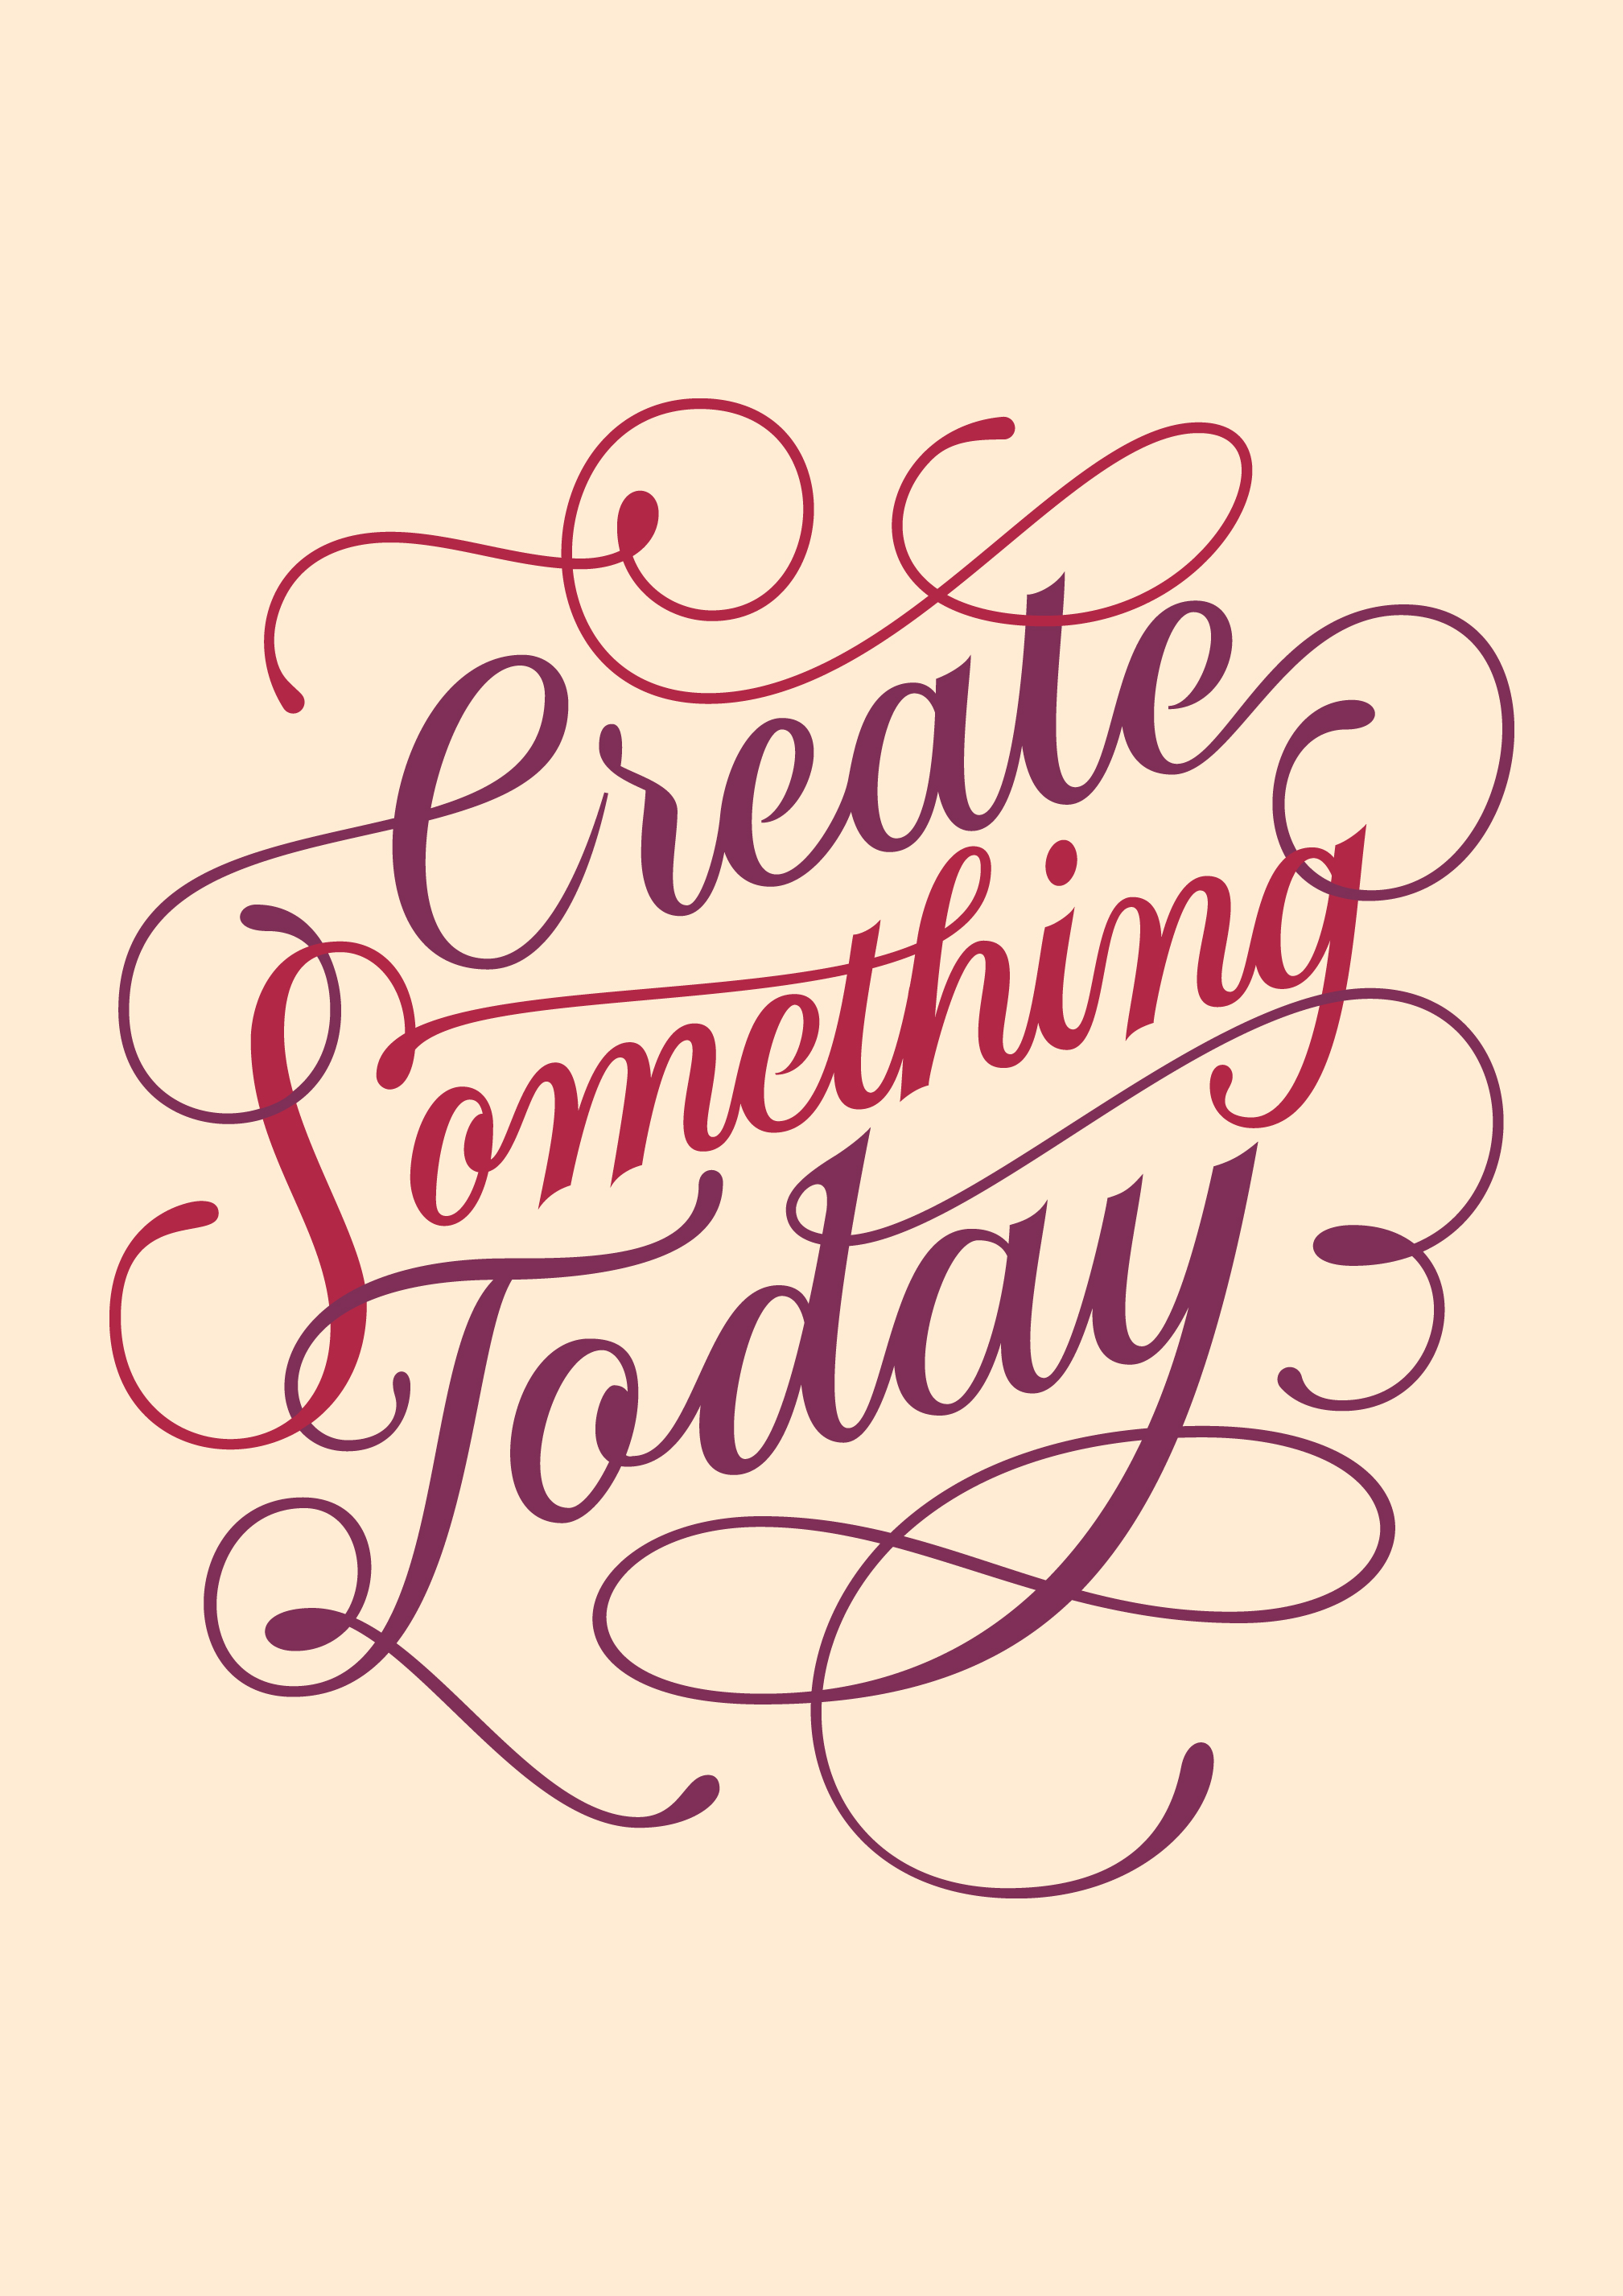 cbeffa79448d9 Isabella Lion - Create Something Today